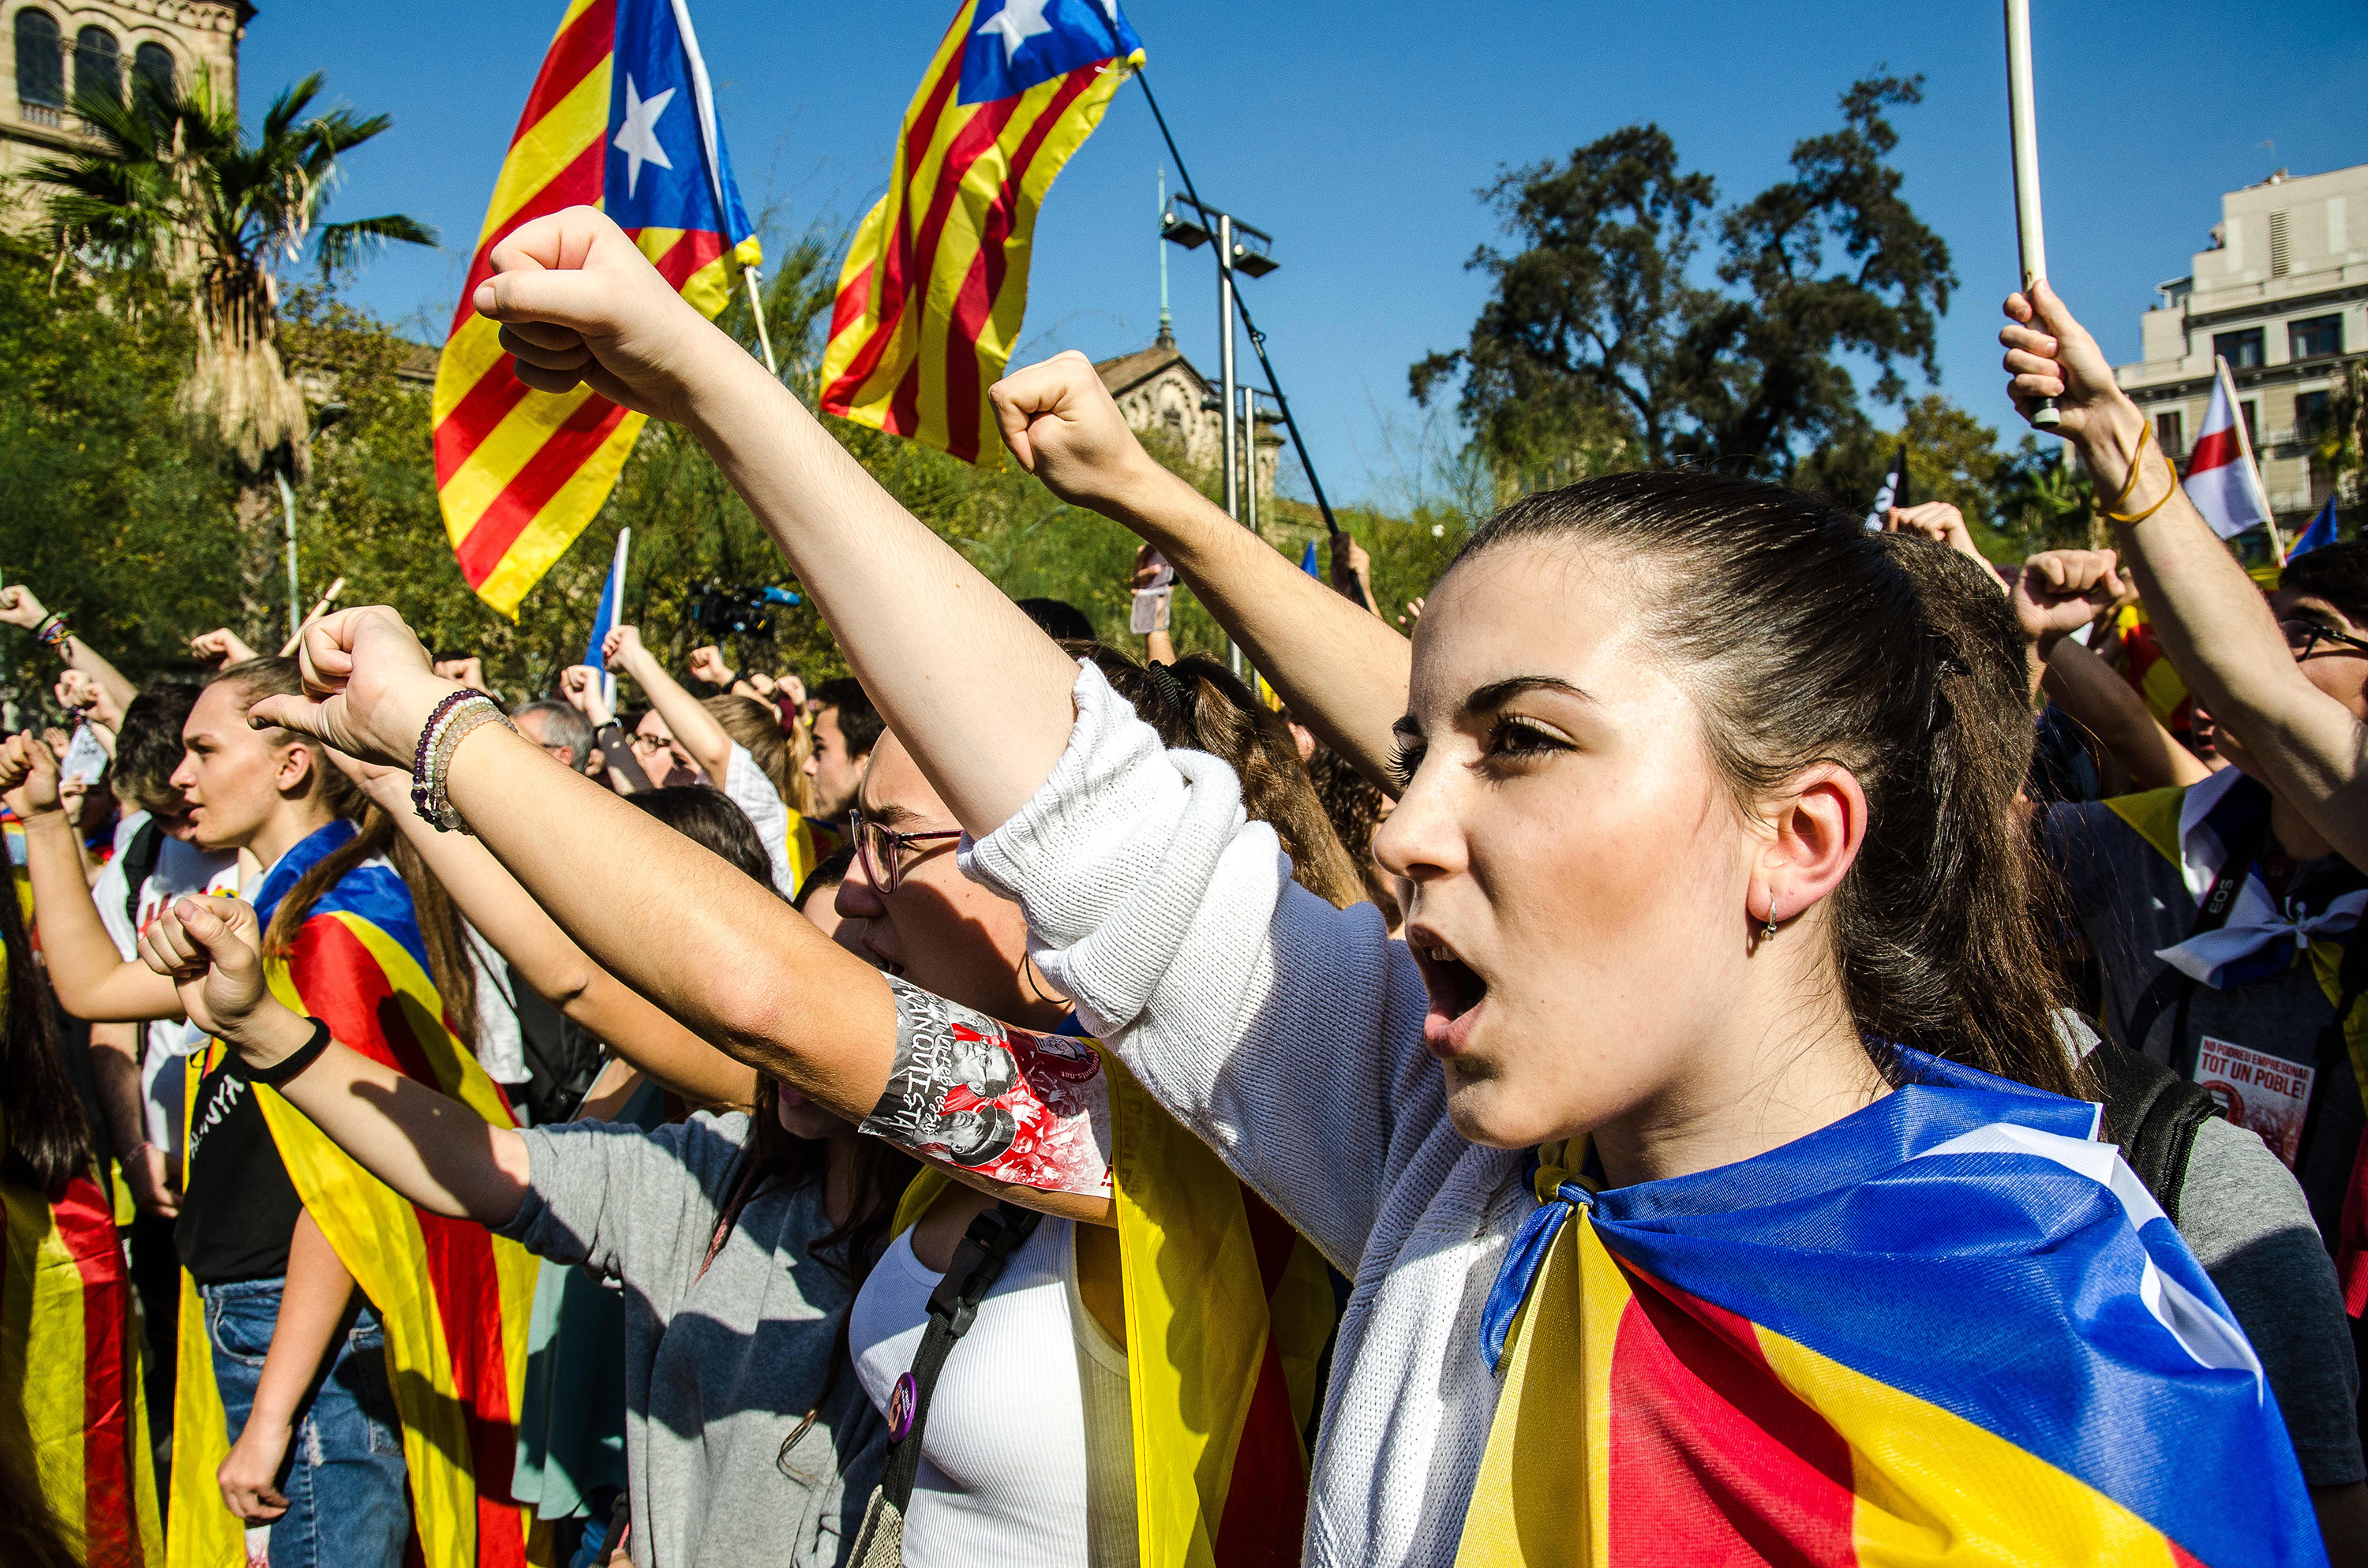 Barcelona and its region Catalonia votes to secede from Spain; Senate responds by approving regional takeover Featured